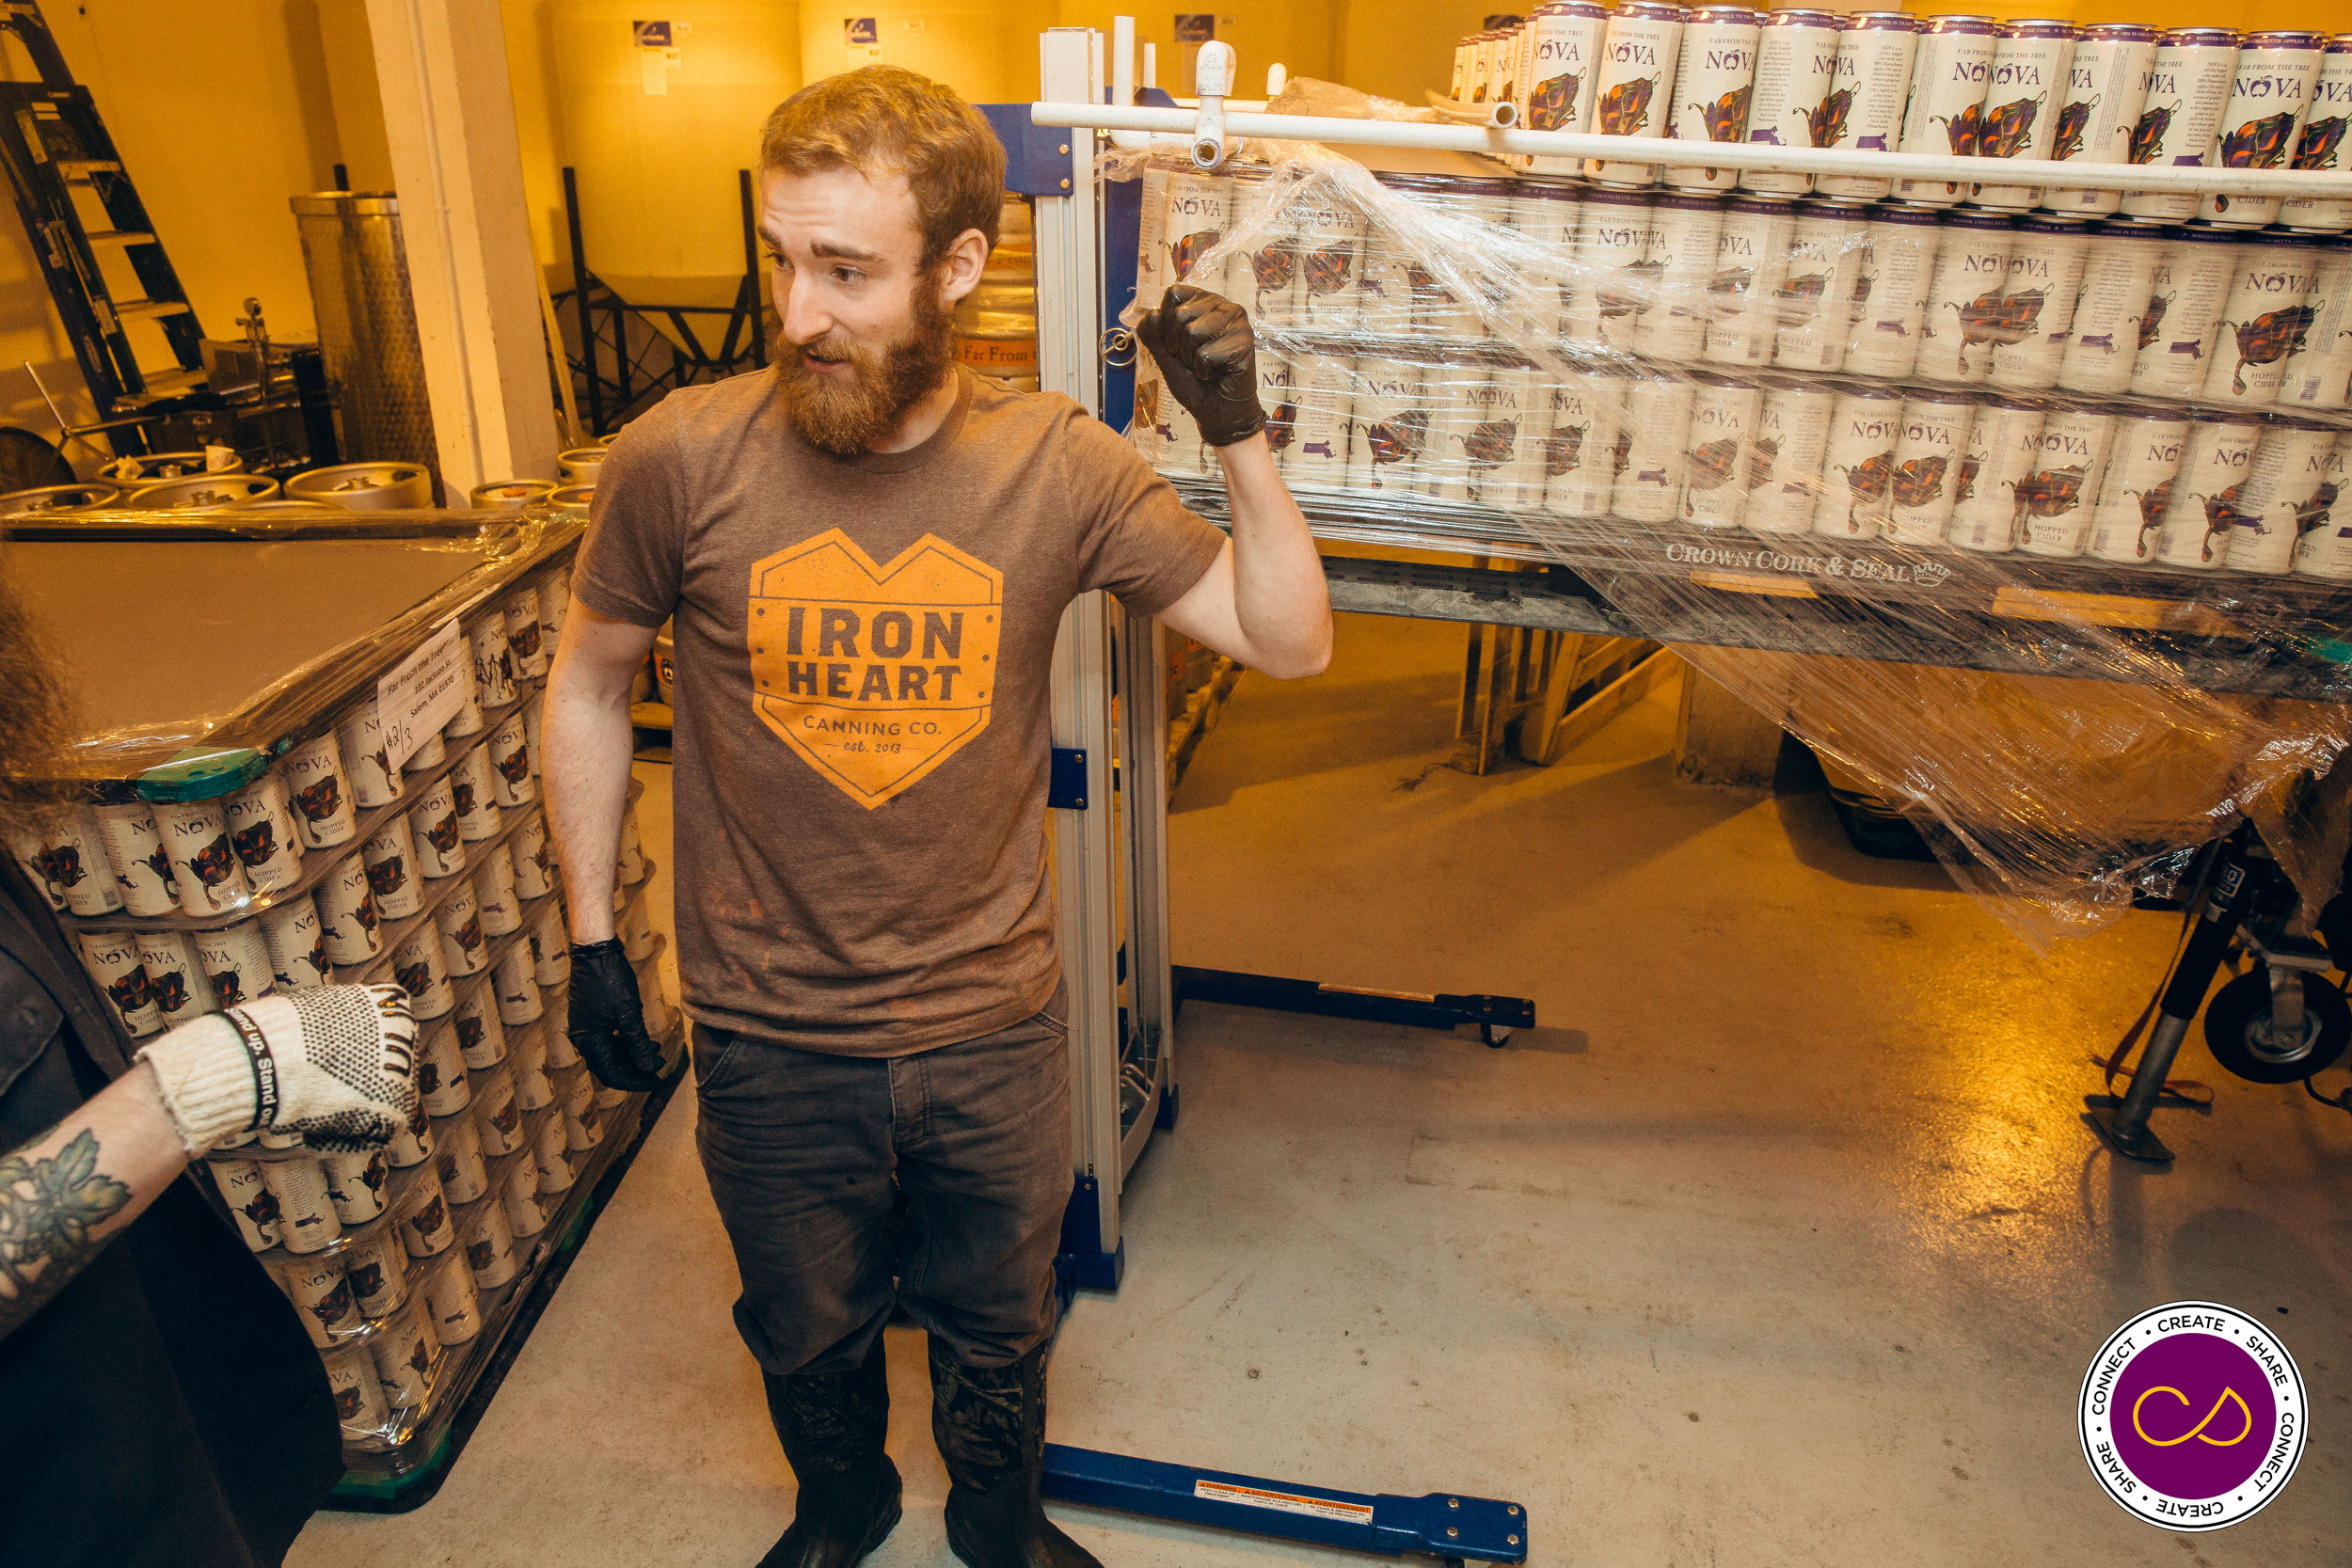 Far From the Tree Cider and Iron Heart Canning Co.